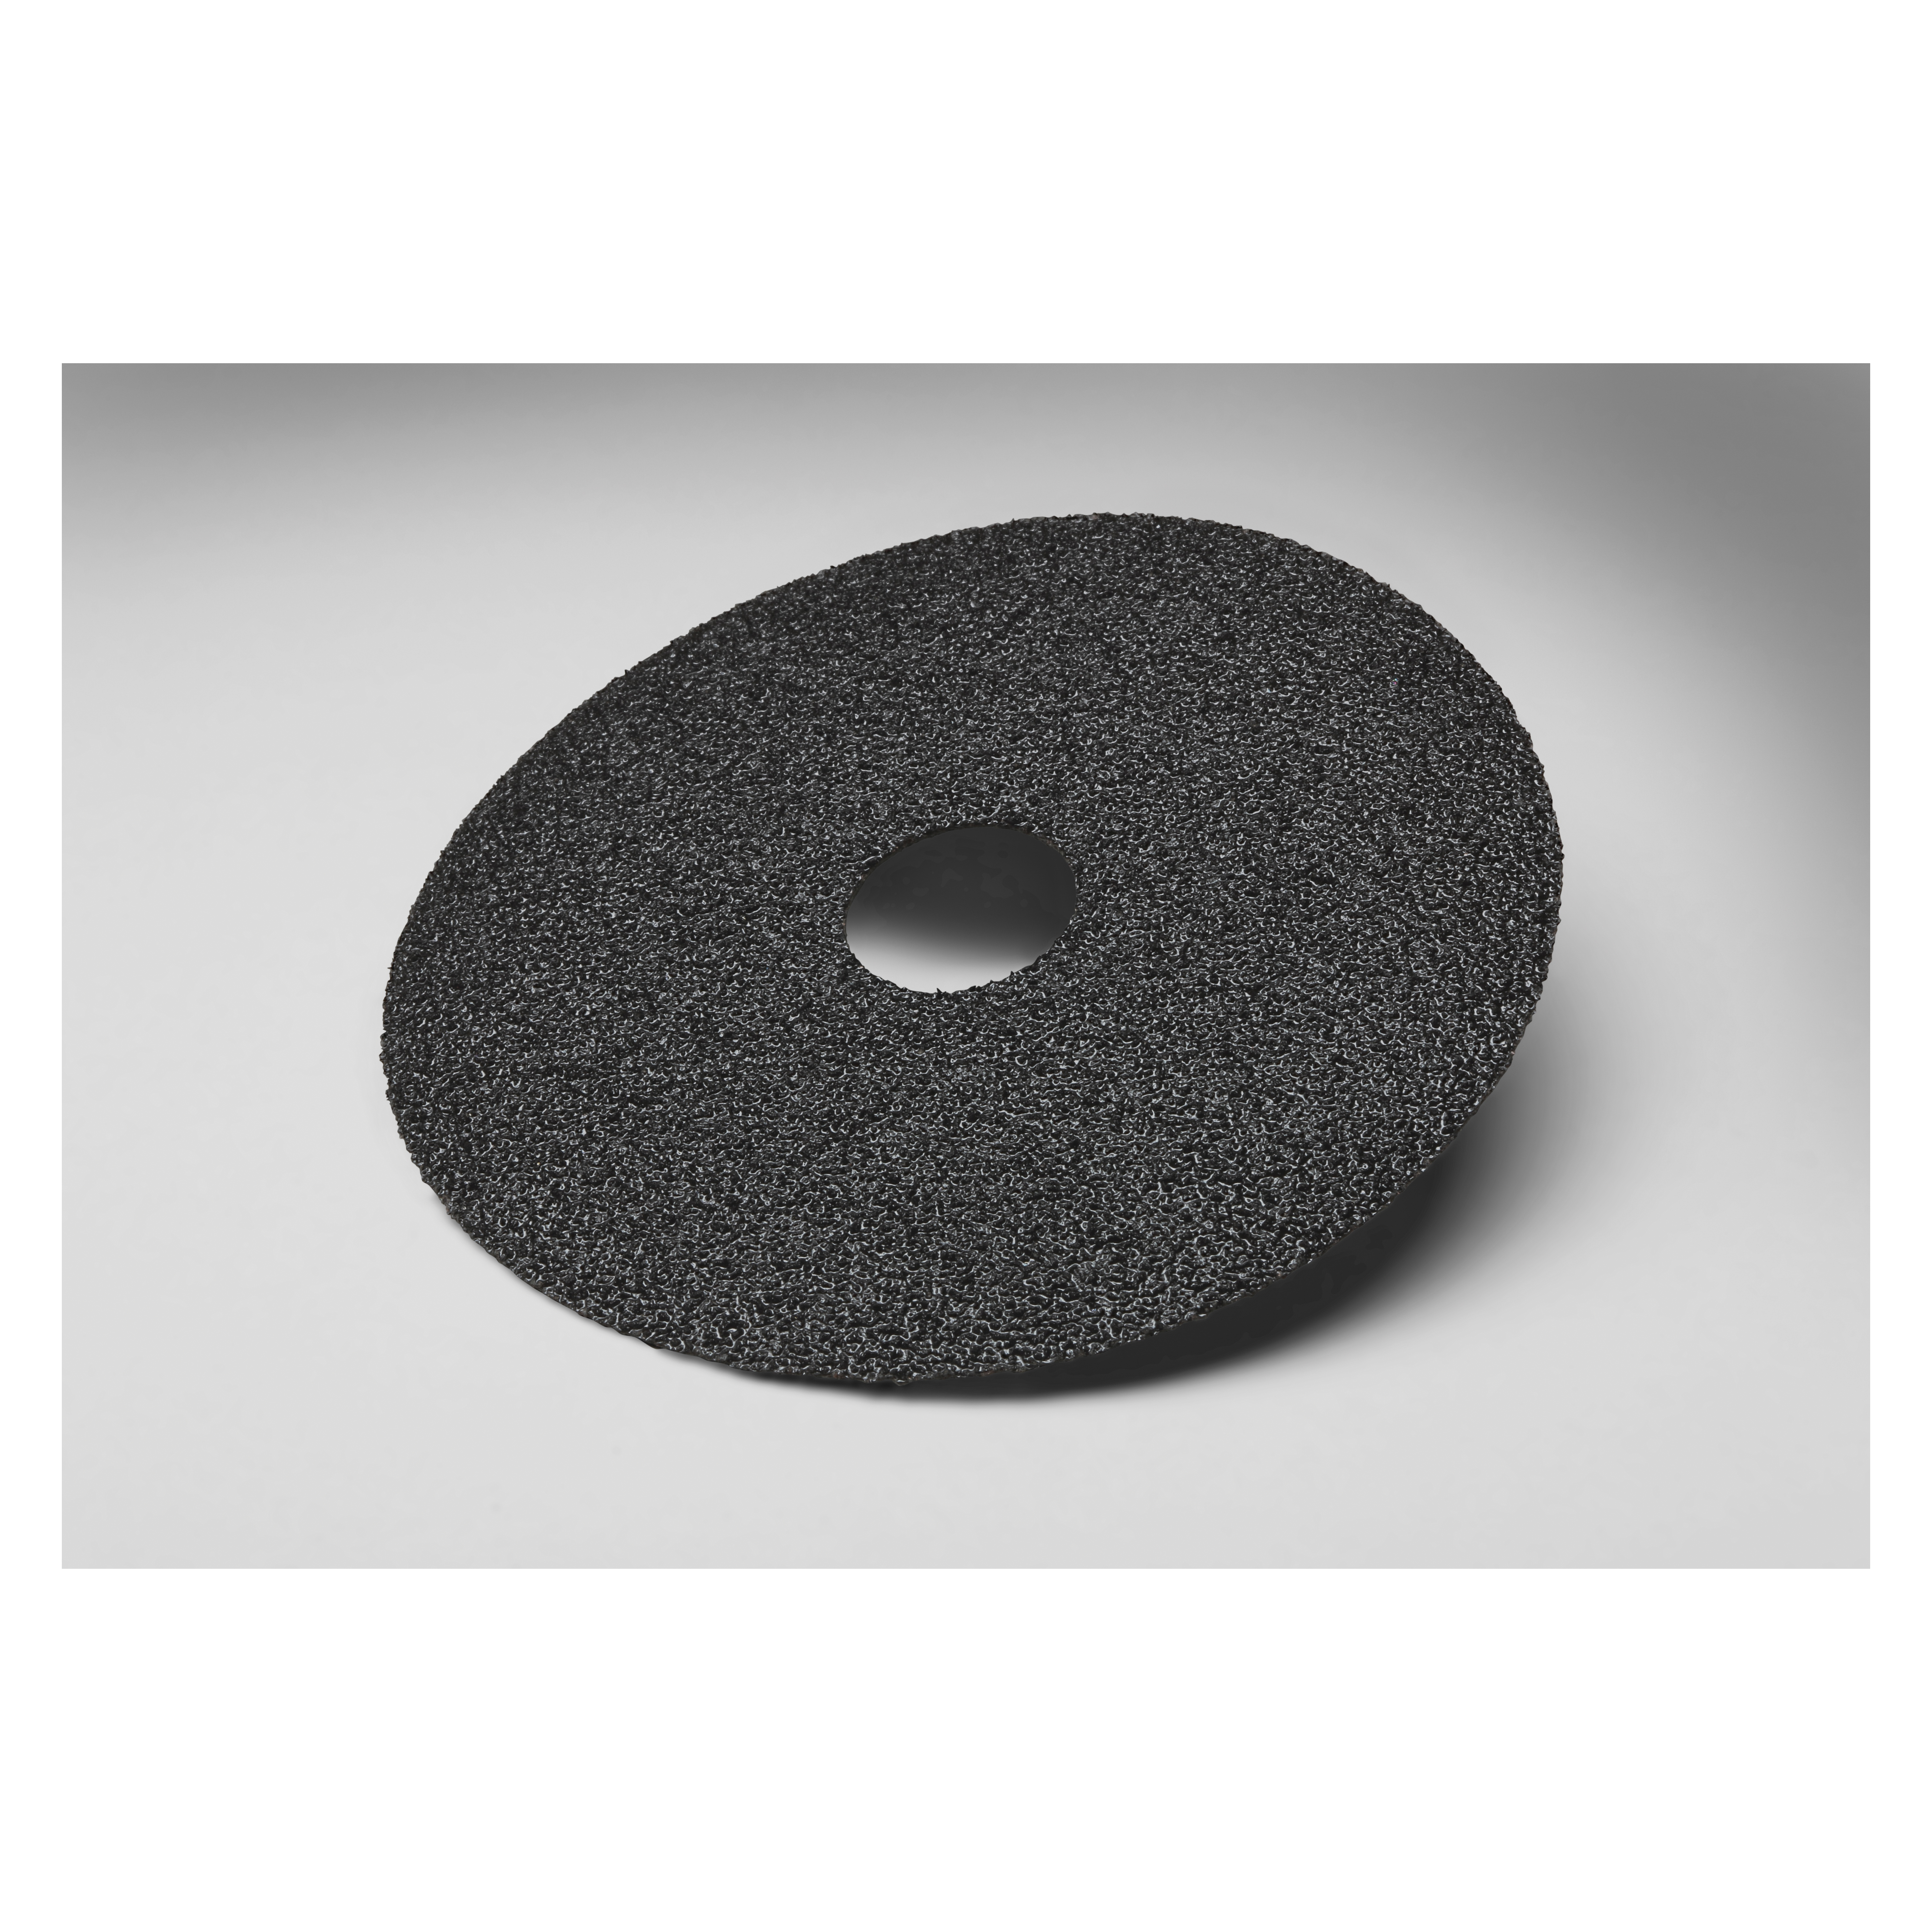 3M™ 051111-50413 501C Close Coated Closed Coated Abrasive Disc, 4-1/2 in Dia Disc, 7/8 in Center Hole, 36 Grit, Very Coarse Grade, Zirconia Alumina Abrasive, Arbor Attachment